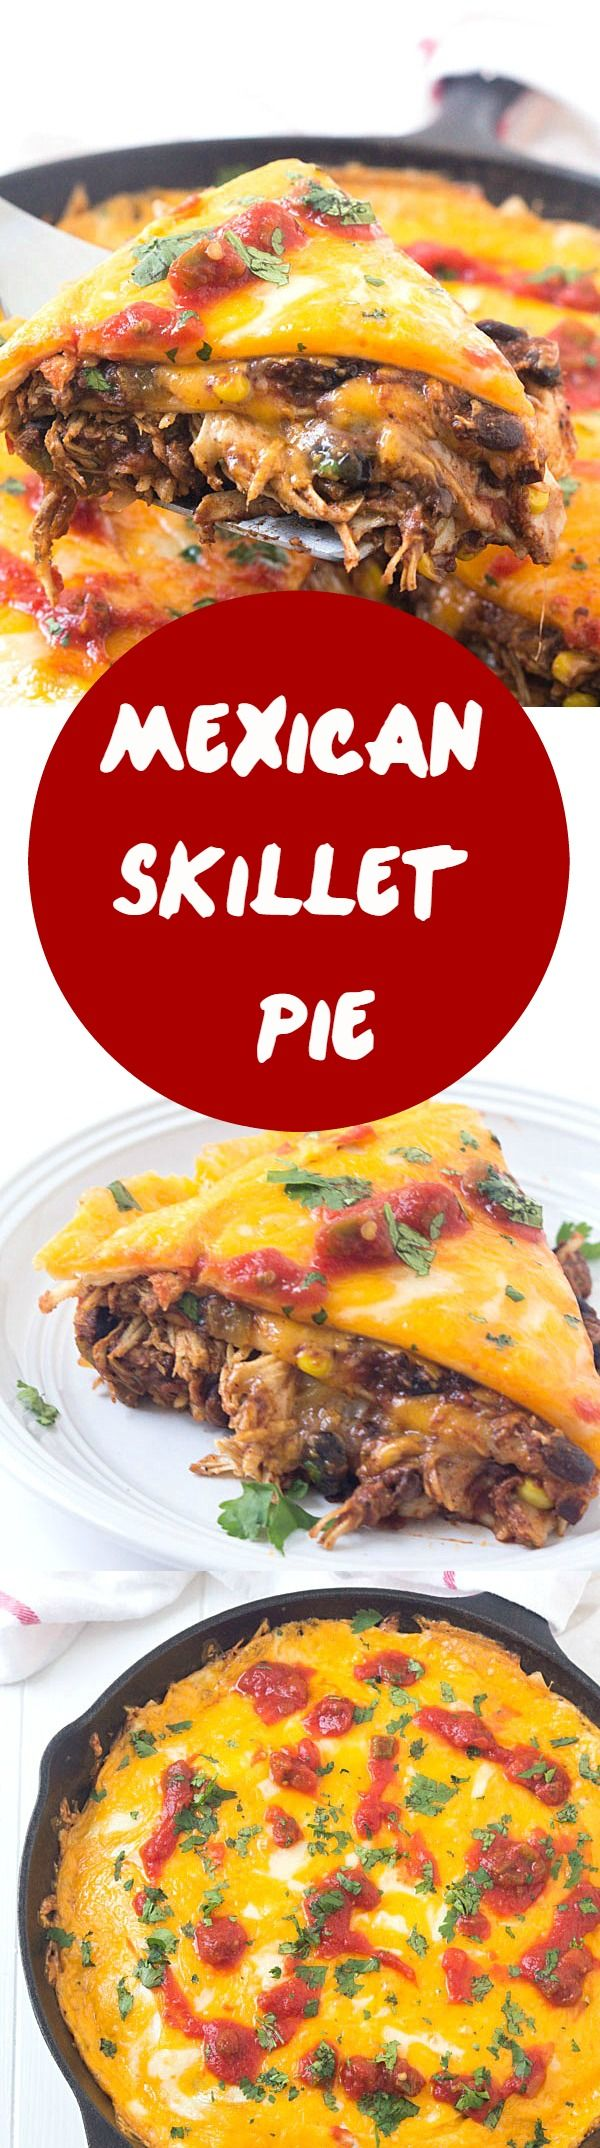 Mexican Skillet Pie - Layered with tortillas, homemade enchilada sauce with black beans and corn, then topped with taco-seasoned shredded chicken! Will become a new favorite the whole family will enjoy!